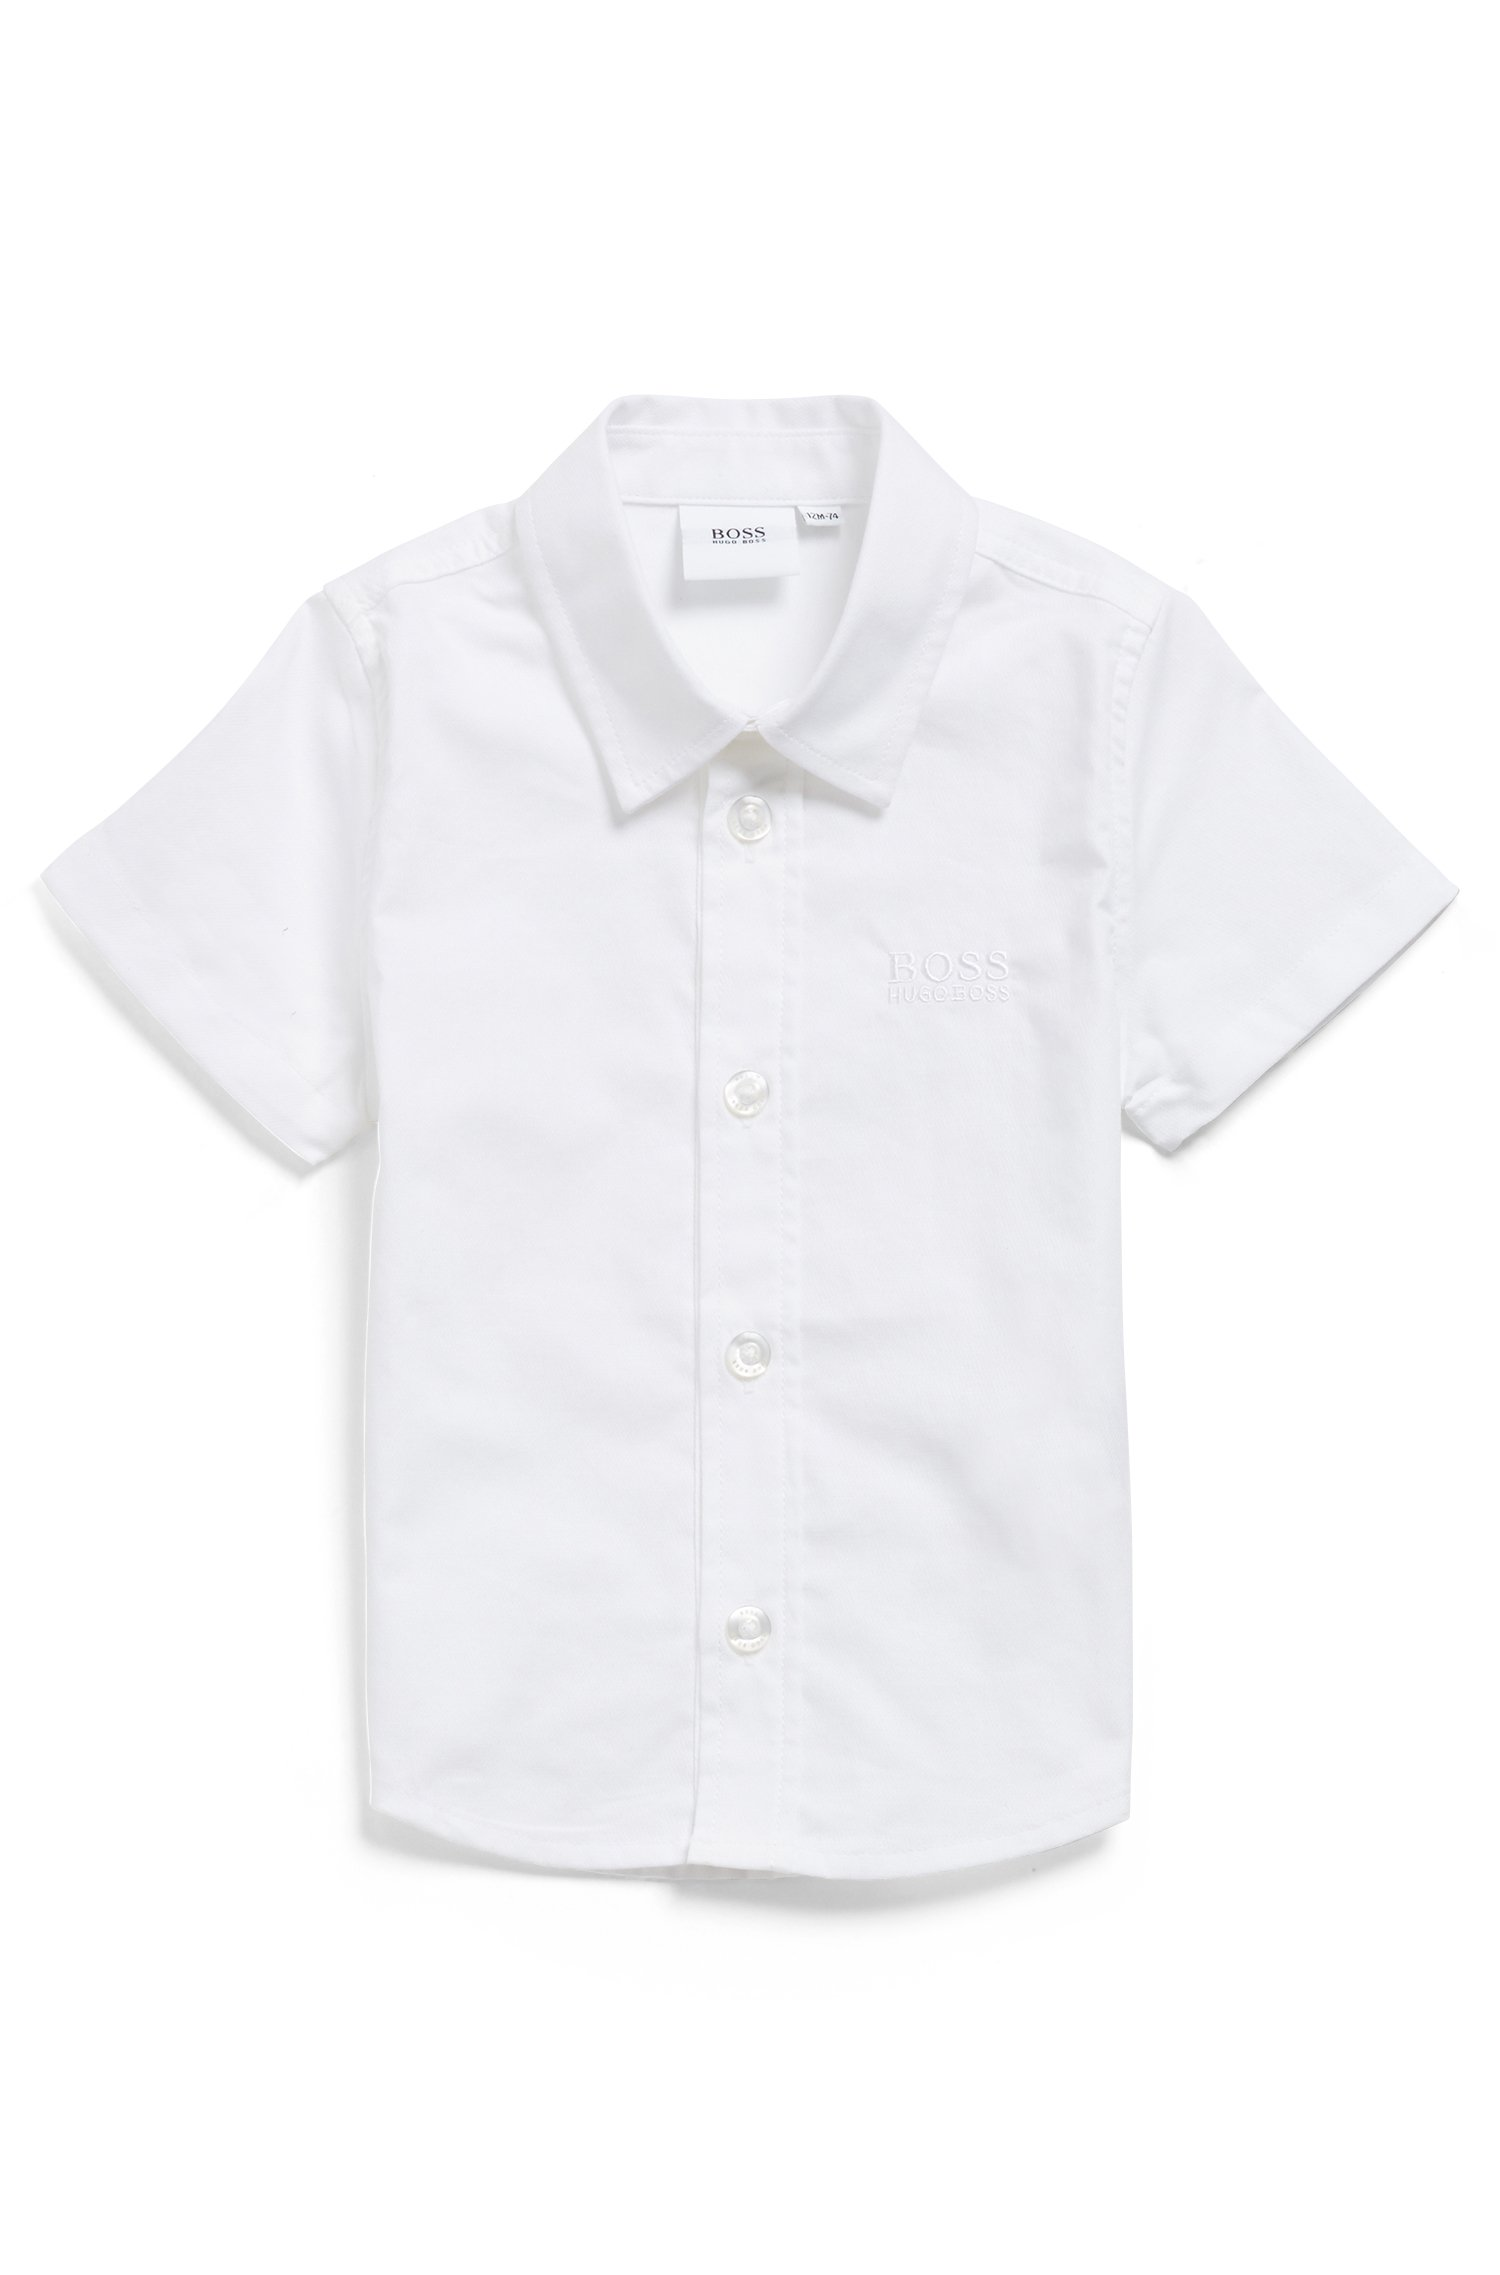 Kids' short-sleeved shirt in cotton with embroidered logo, White